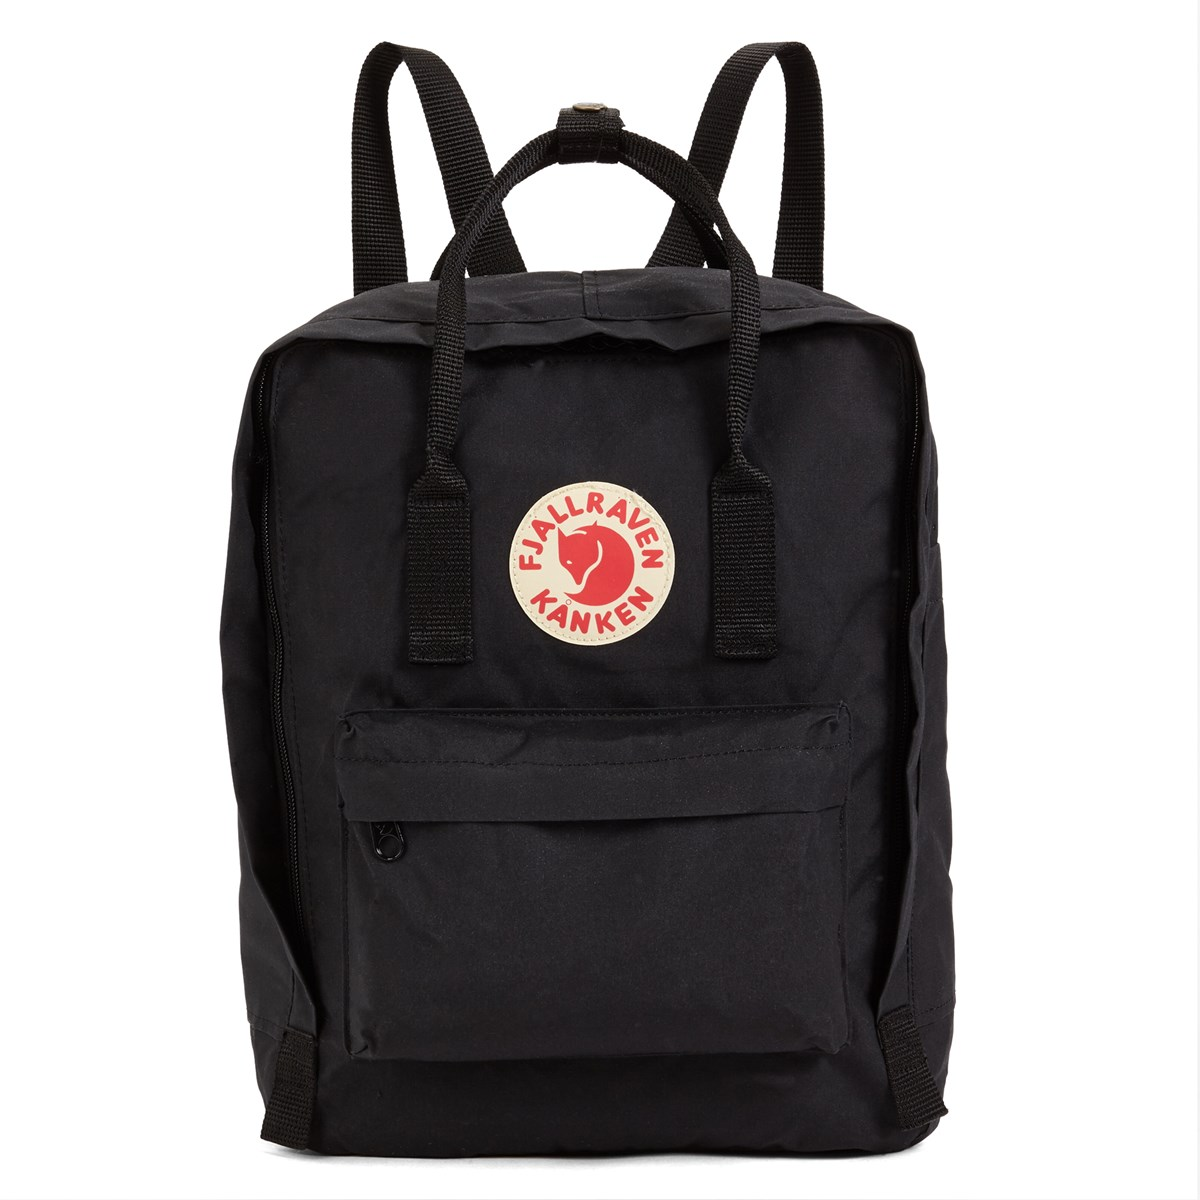 Backpack Black Kanken Backpack In Black Little Burgundy